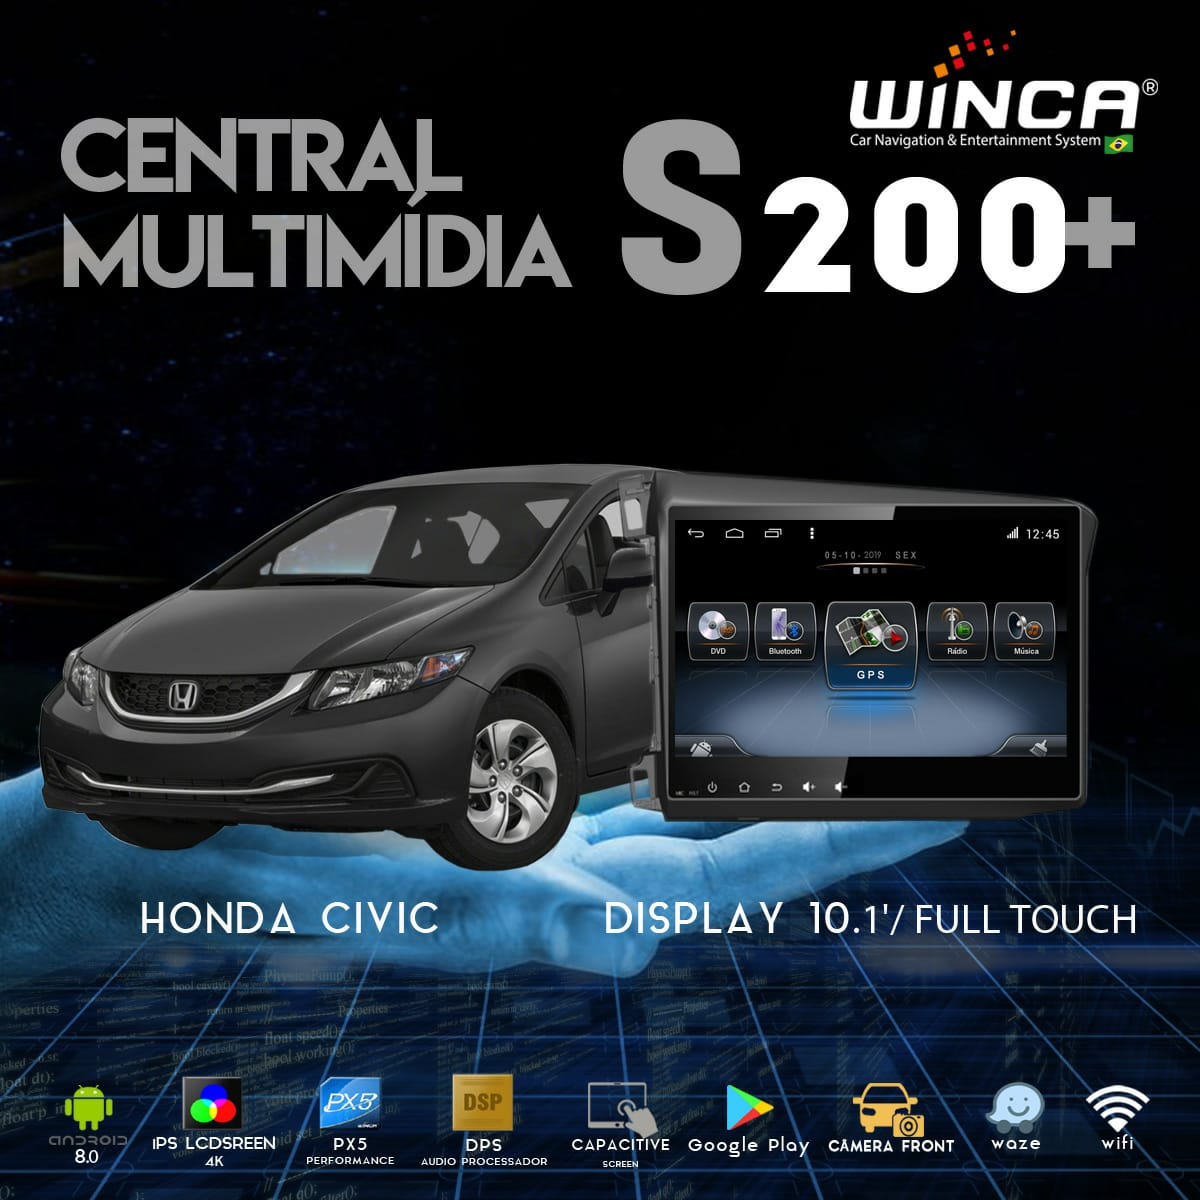 Central Multimidia Honda CIVIC 2012 a 2016 Winca Tela 9 polegas  - Waze Spotify youtube - 2 cameras Ré + Frontal - TV  Digital - GPS Integrado -  Bluetooth - 2 entradas USB - Android 9.0